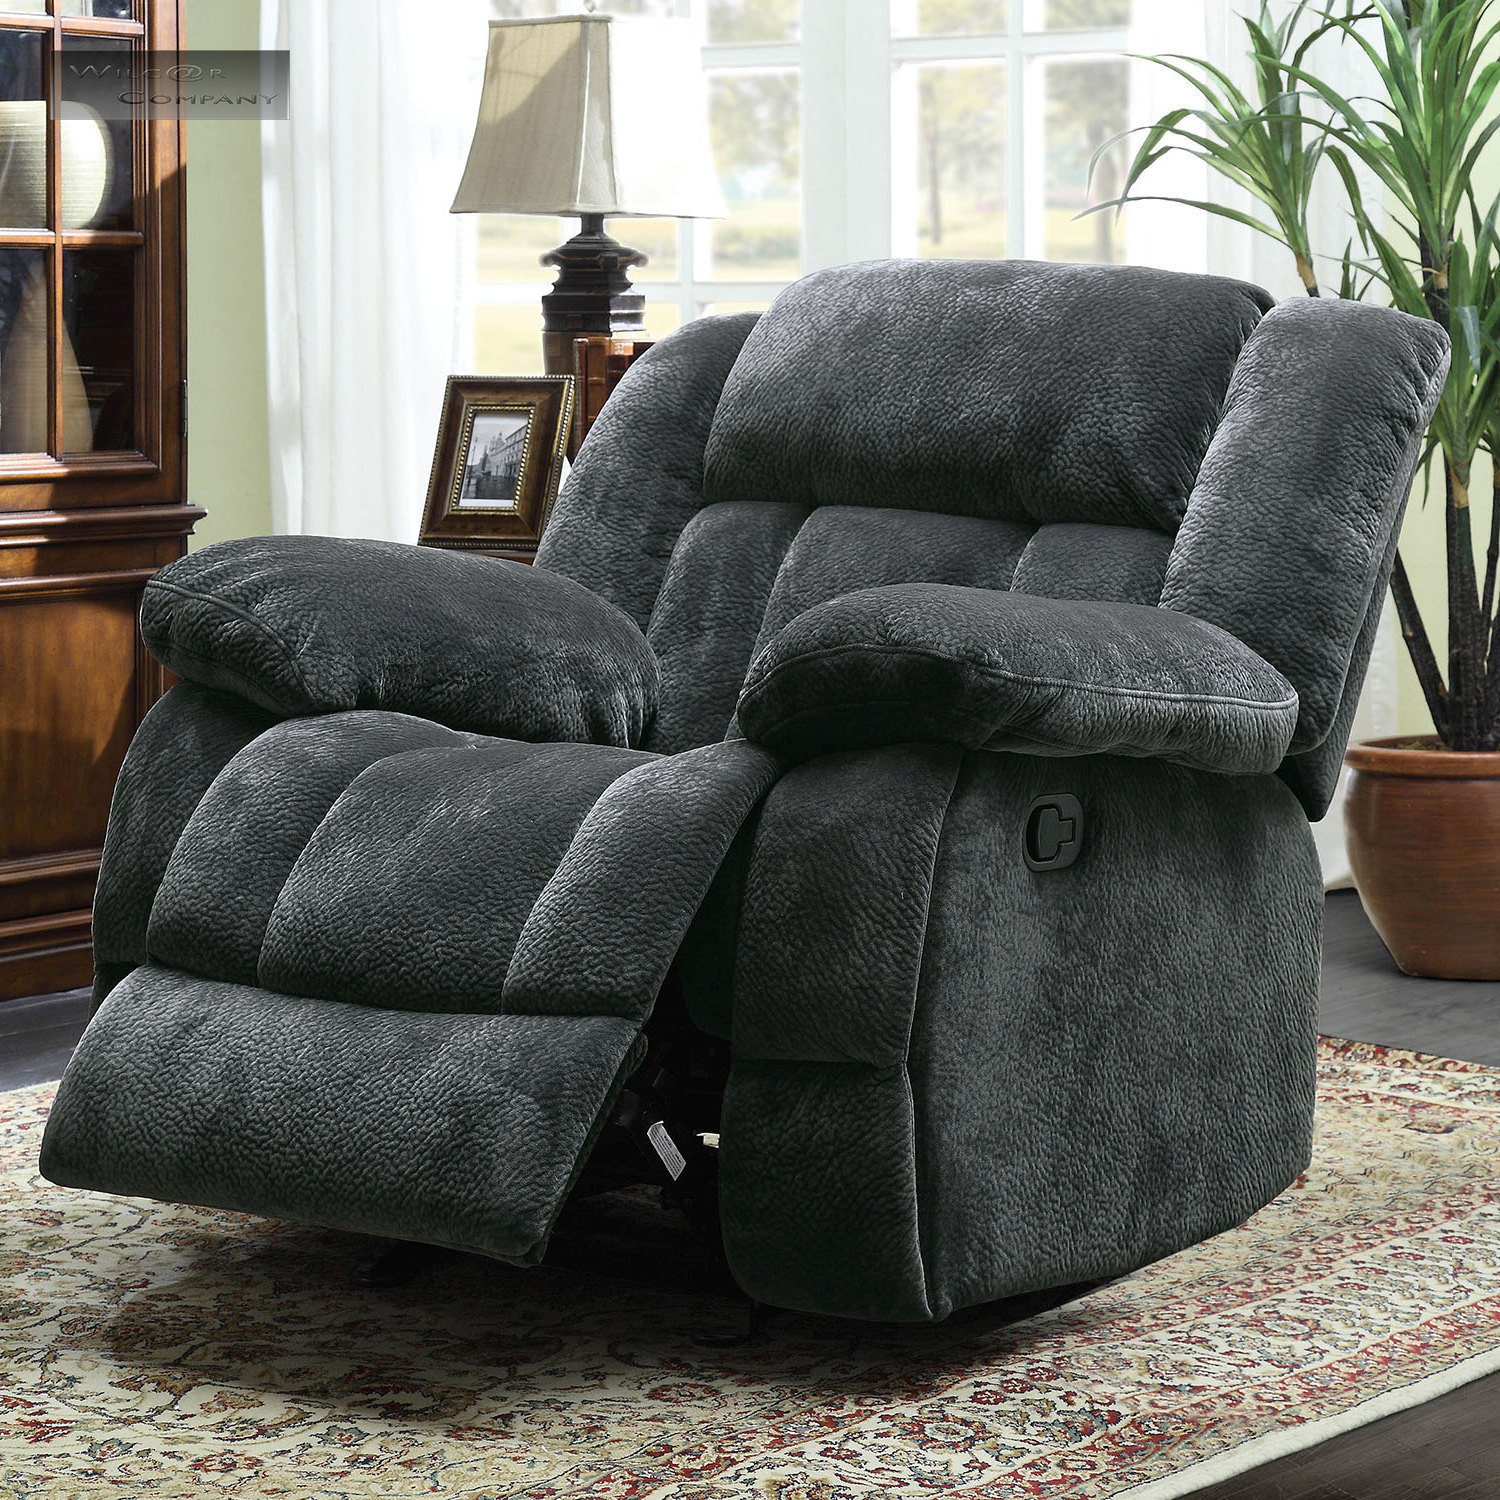 Gray Oversized Chair Grey Microfiber Oversized Glider Recliner Lazy Chair